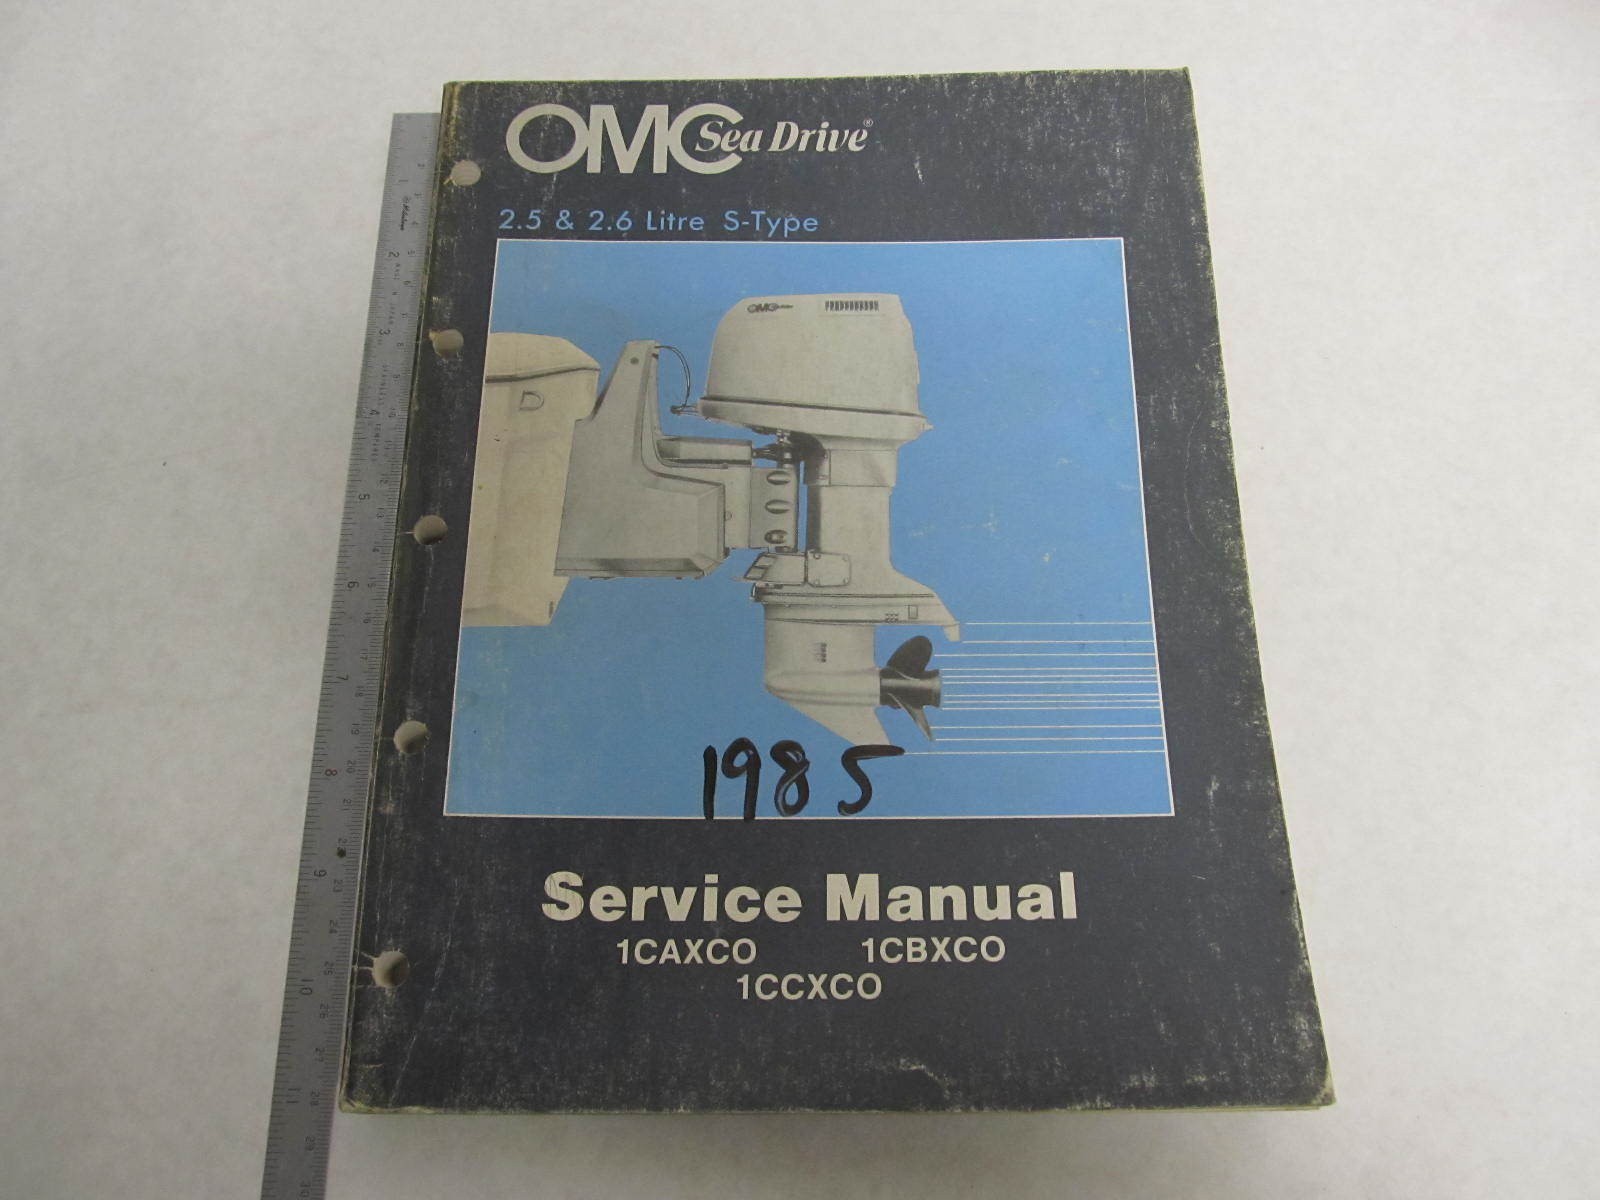 Omc Sea Drive Wiring Diagram Diagrams Boat Ignition 507513 1985 Outboard Service Manual 2 5l 6l S Type Rh Greenbayprop Com Evinrude Schematics Mercury Switch